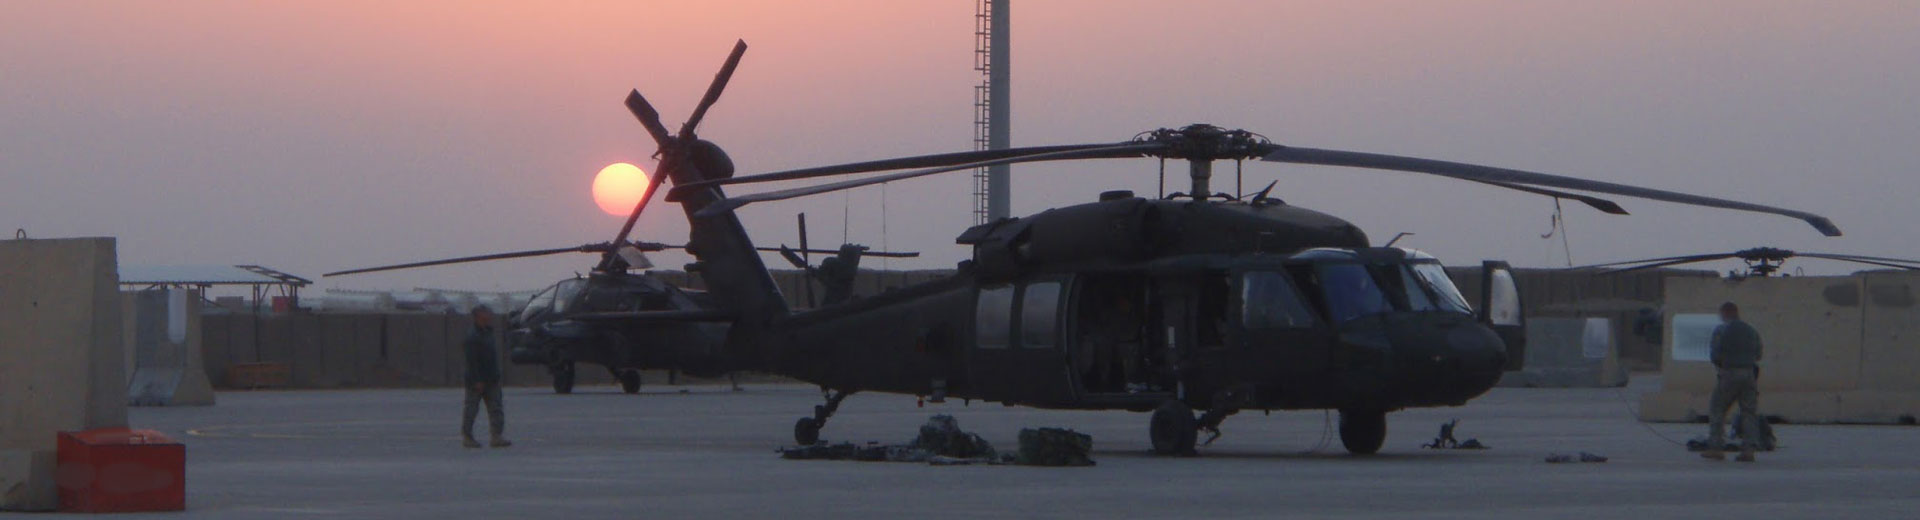 Sunset on UH60